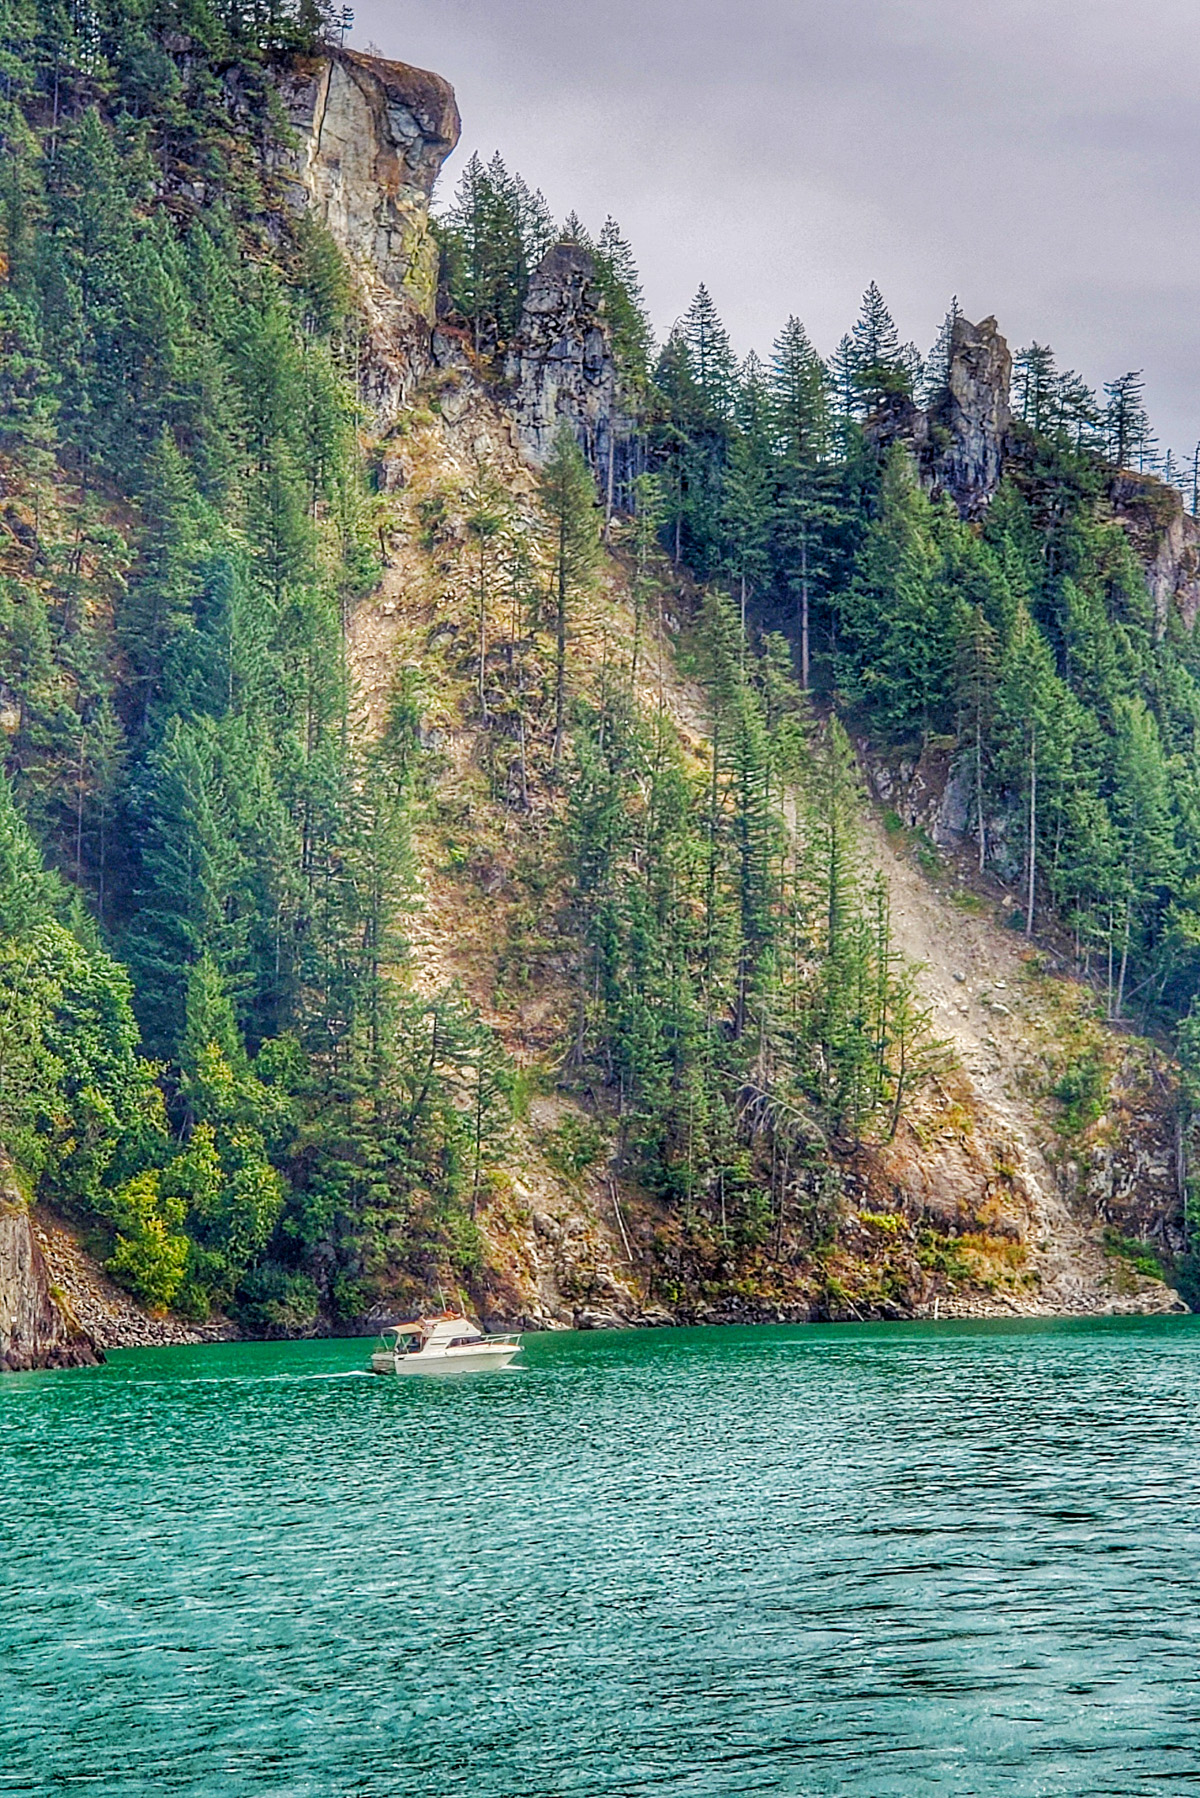 Harrison lake view with cliff and boat